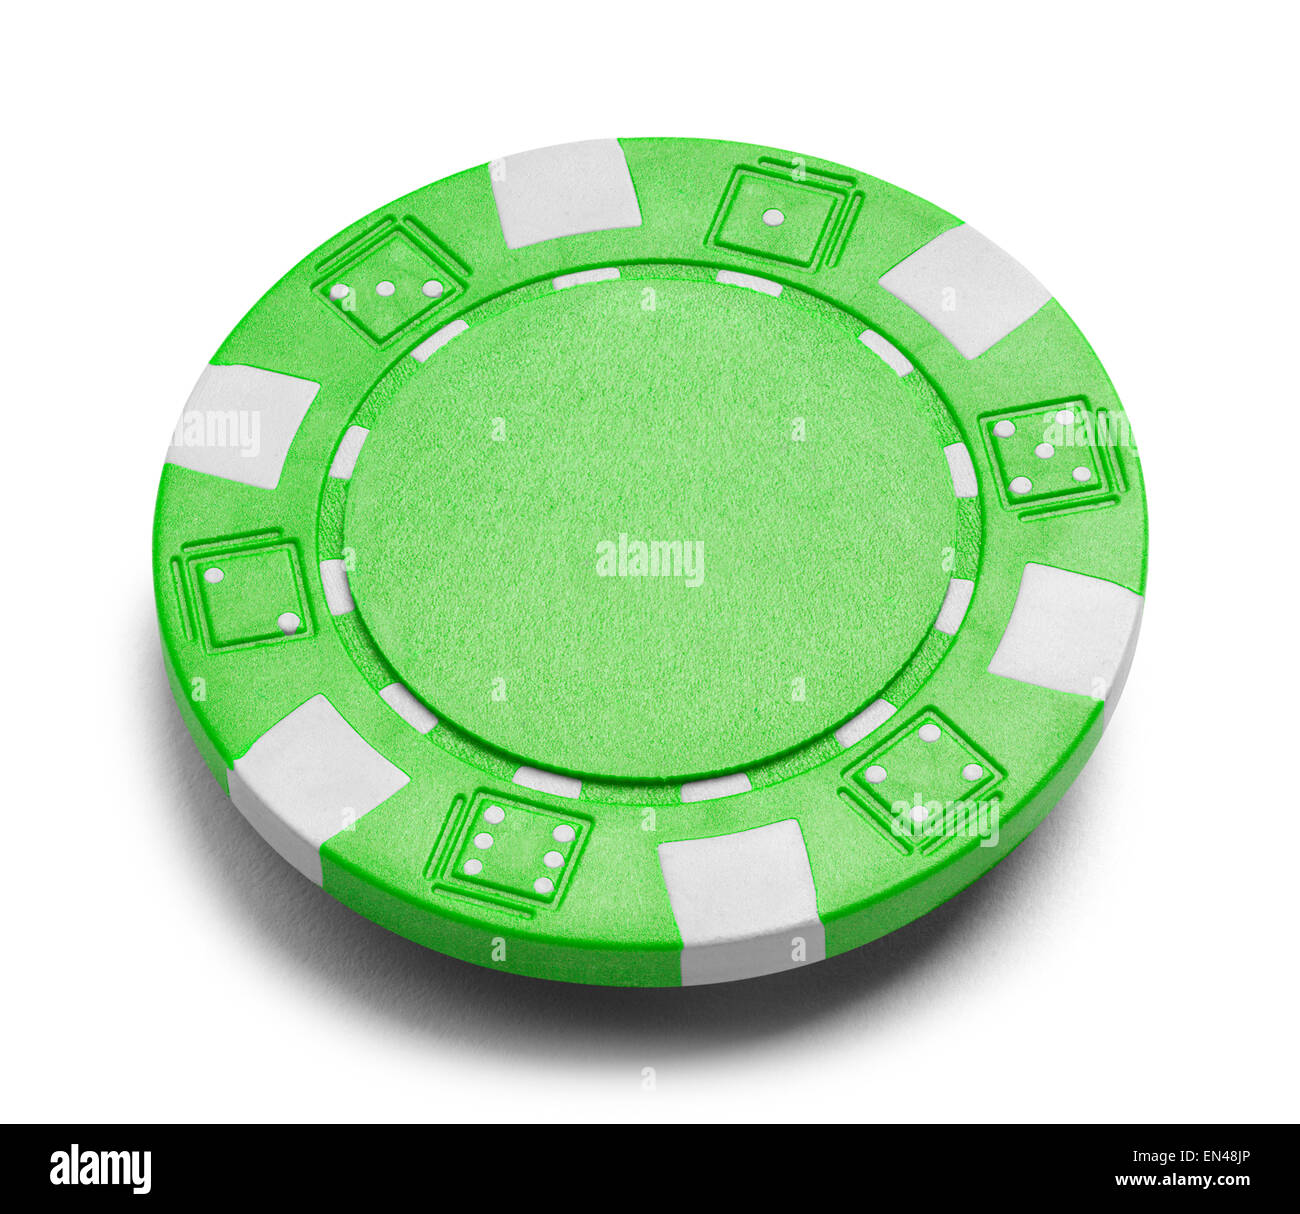 Green Poker Chip with Copy Space Isolated on a White Background. - Stock Image